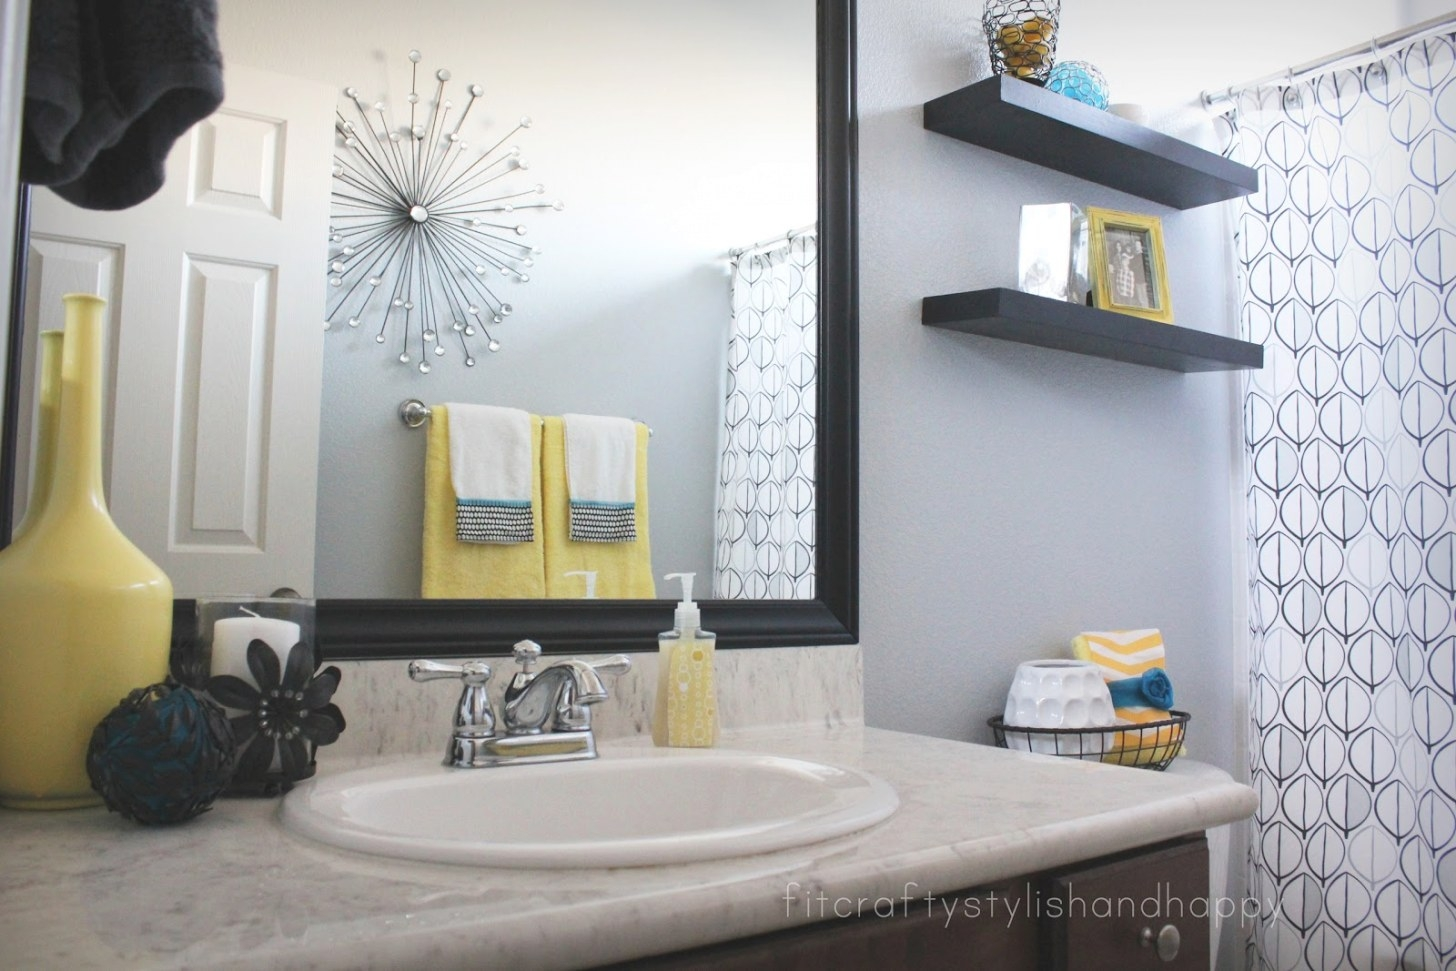 Fit, Crafty, Stylish And Happy: Guest Bathroom Makeover inside Black And Gray Bathroom